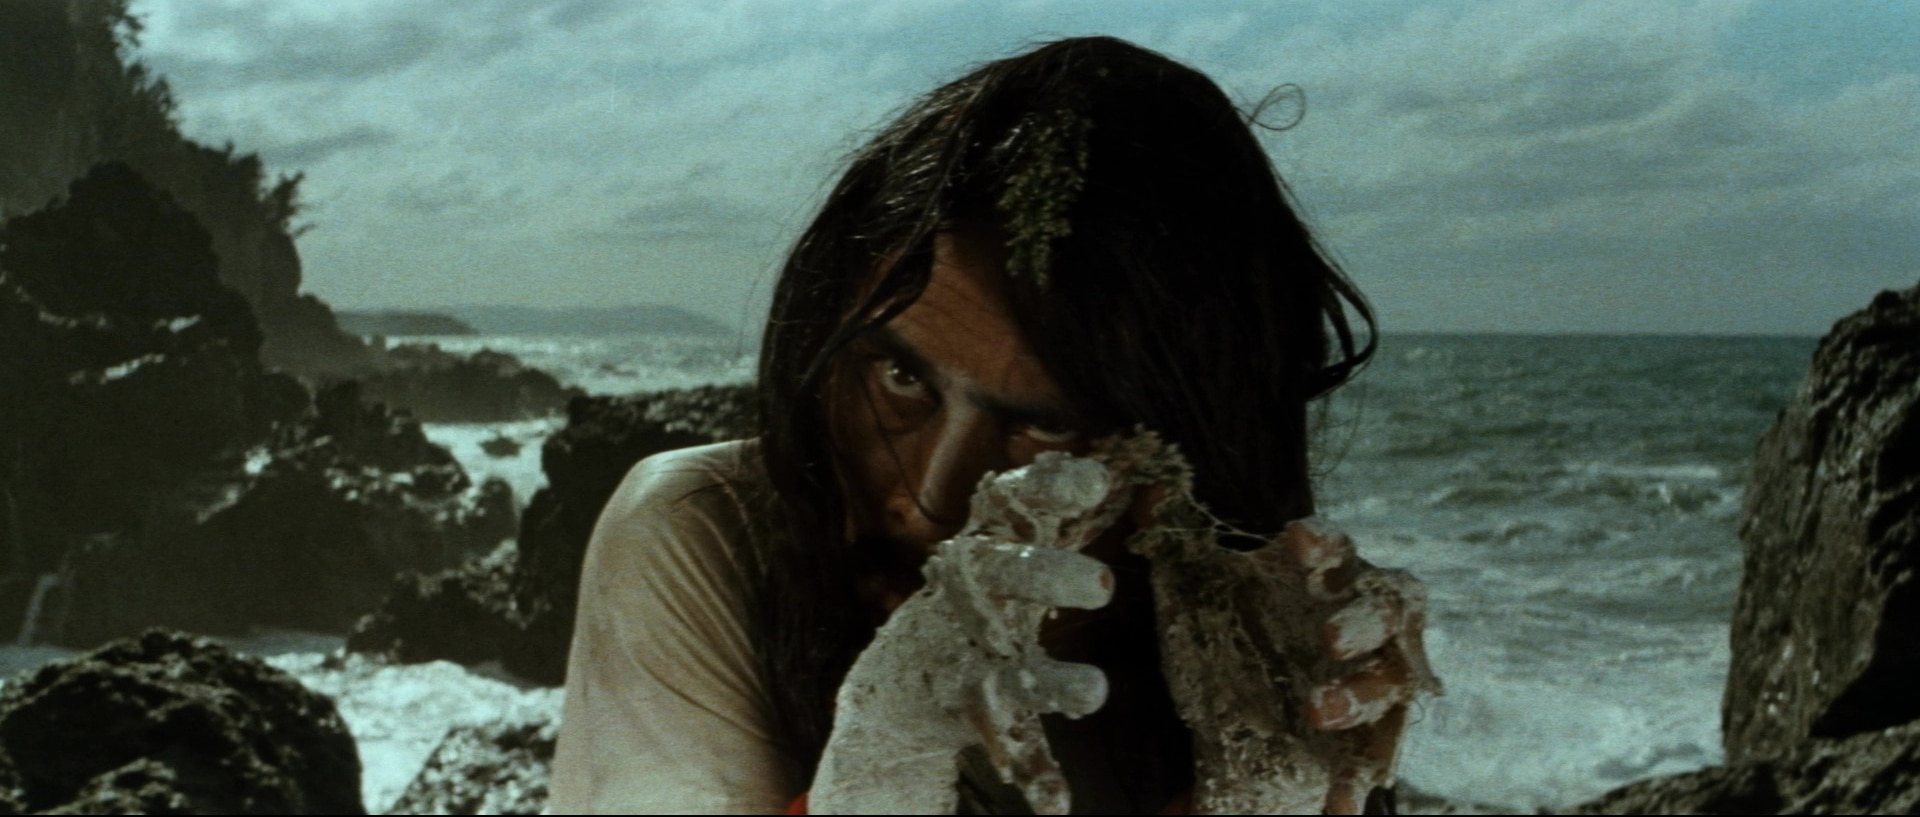 horrors feat - HORRORS OF MALFORMED MEN Blu-ray Review - Visit The Island of Dr. Morose